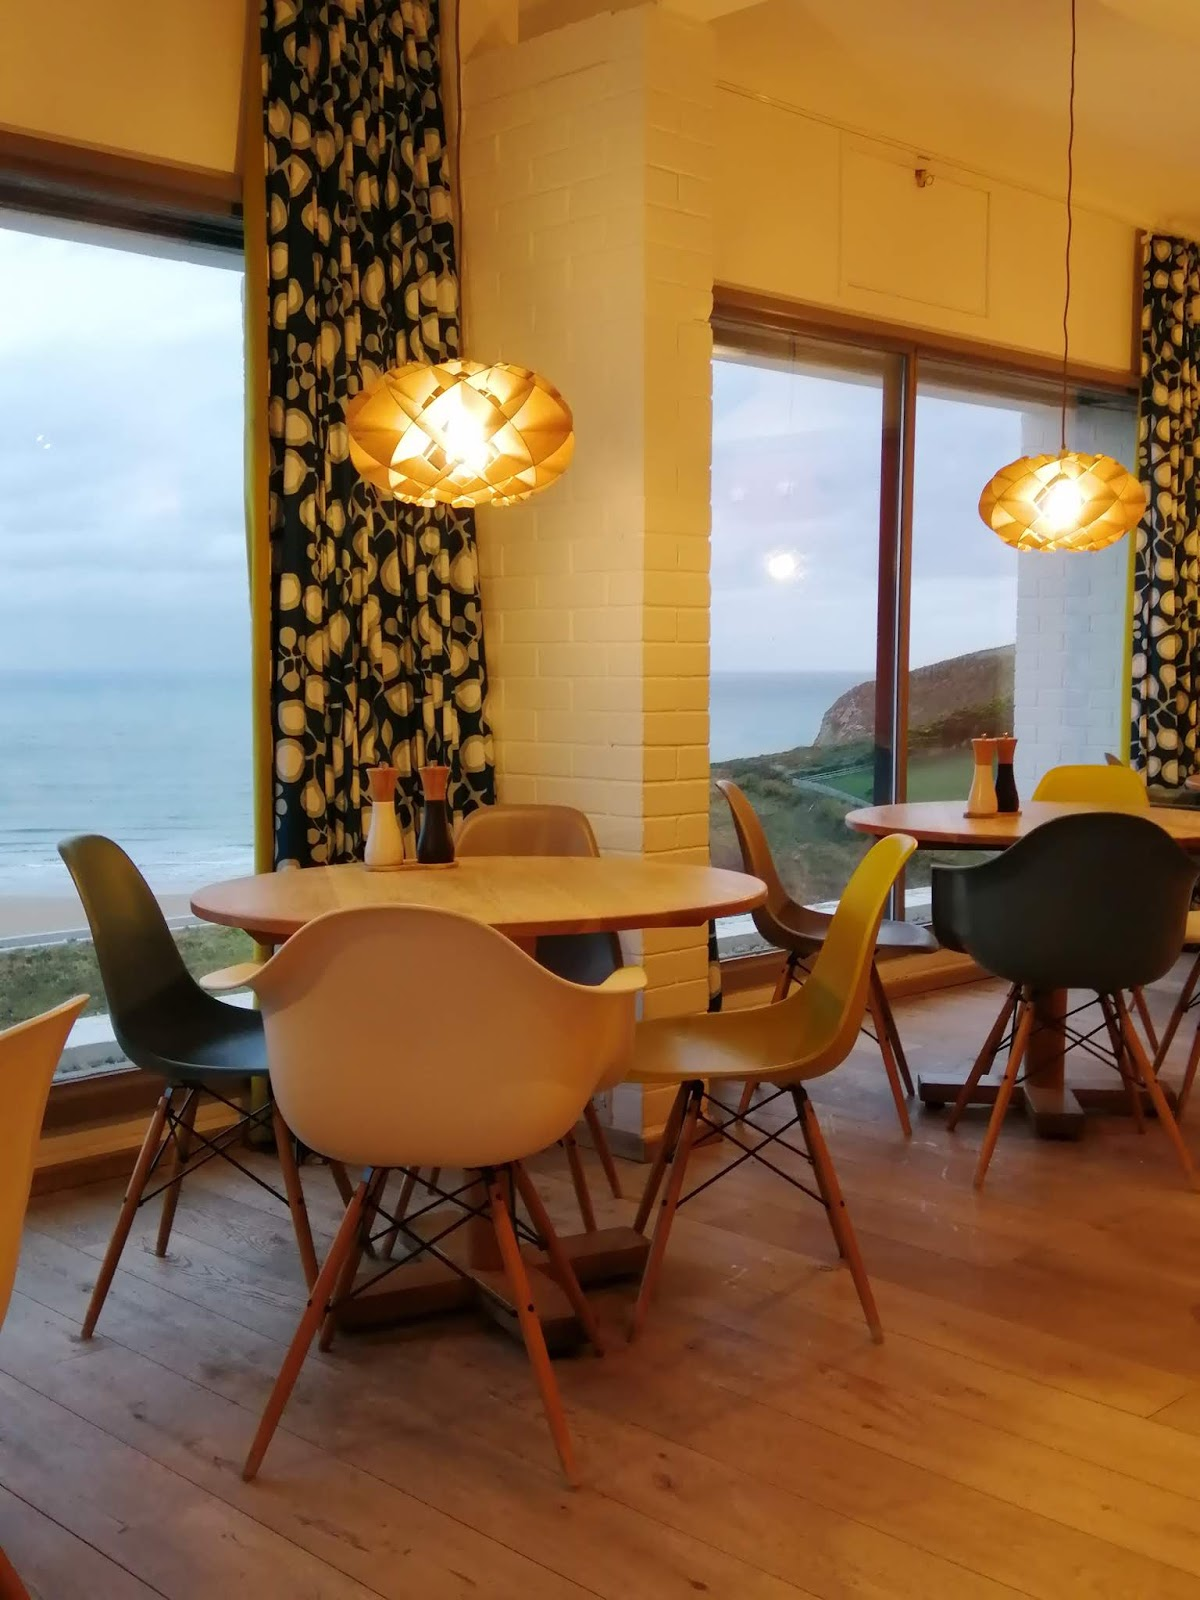 Watching the winter seas in the Mid Century Modern hotel at Bedruthan Steps